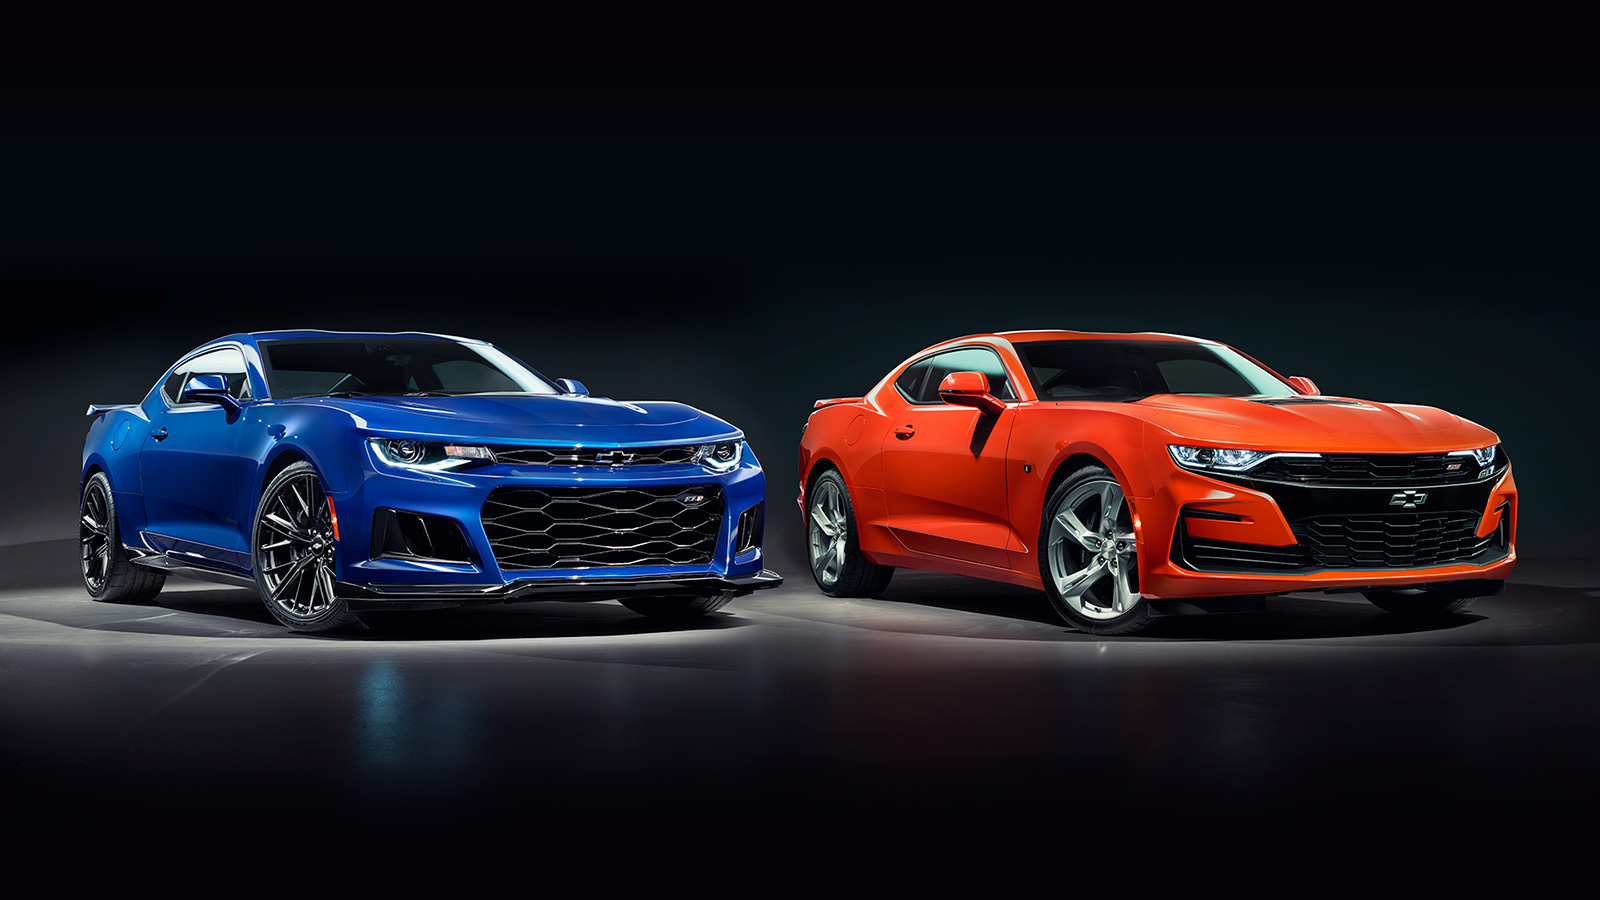 HSV Launches 2019 Chevrolet Camaro Range